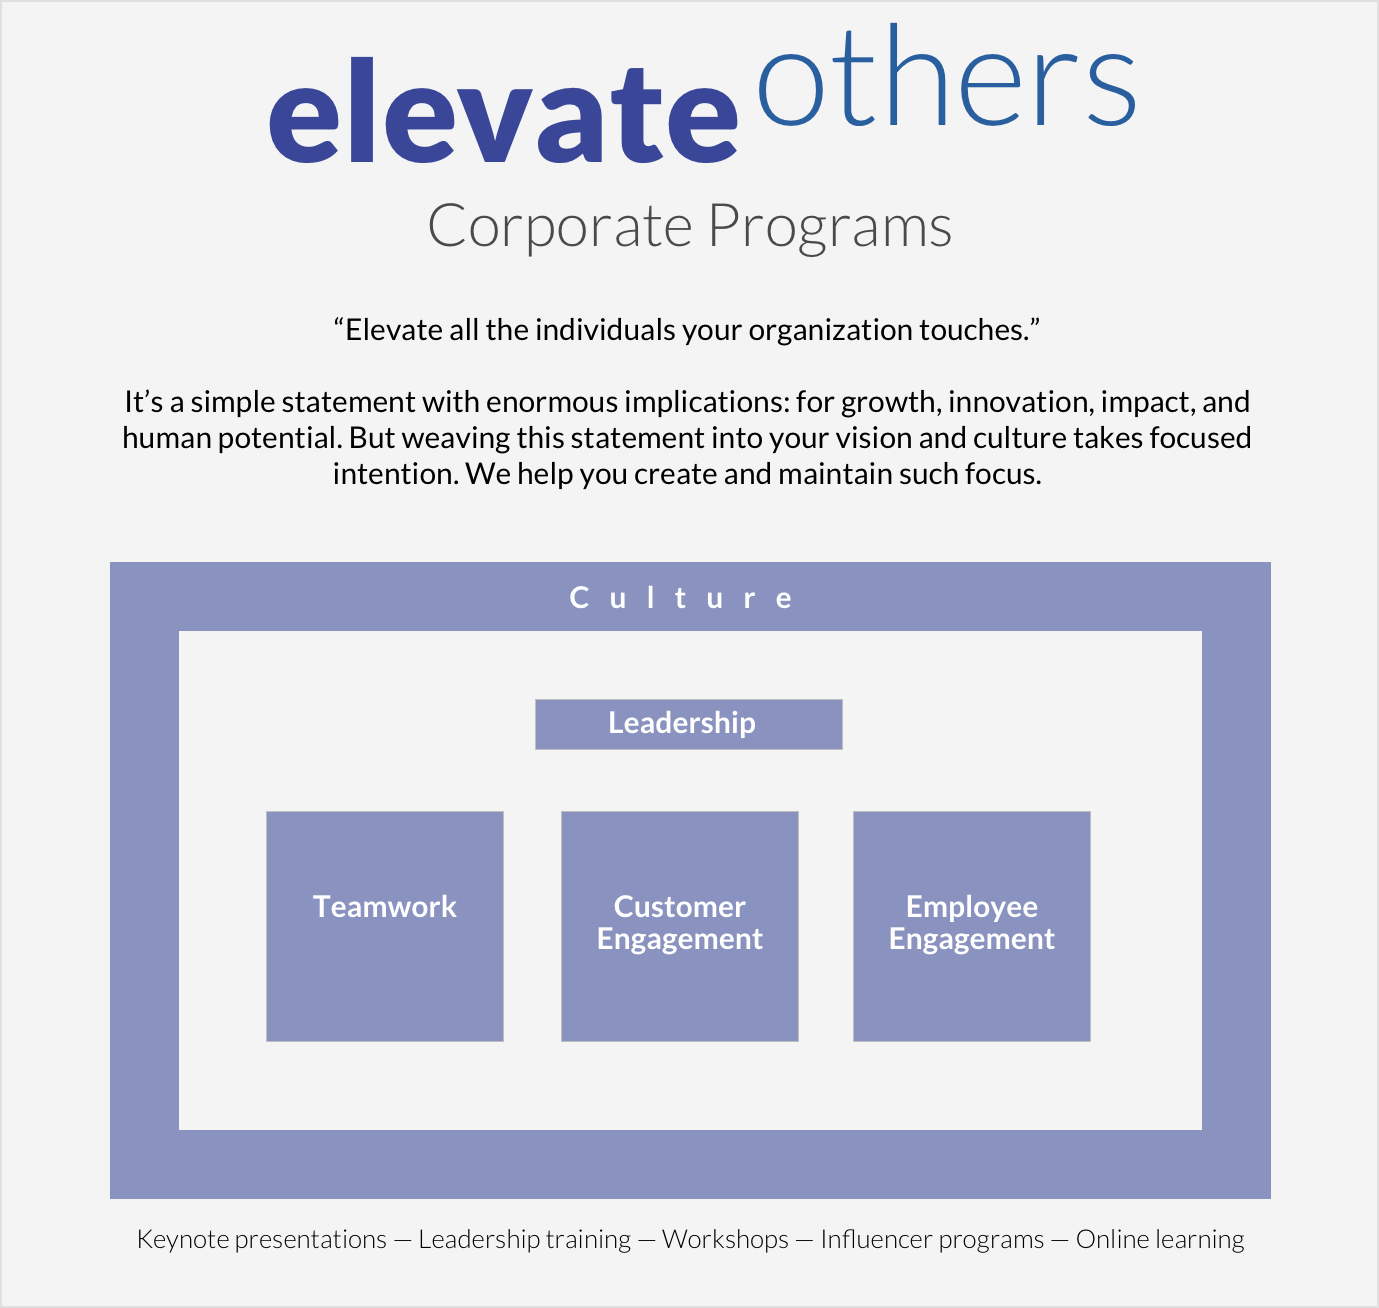 Elevate Others Corp programs.jpg